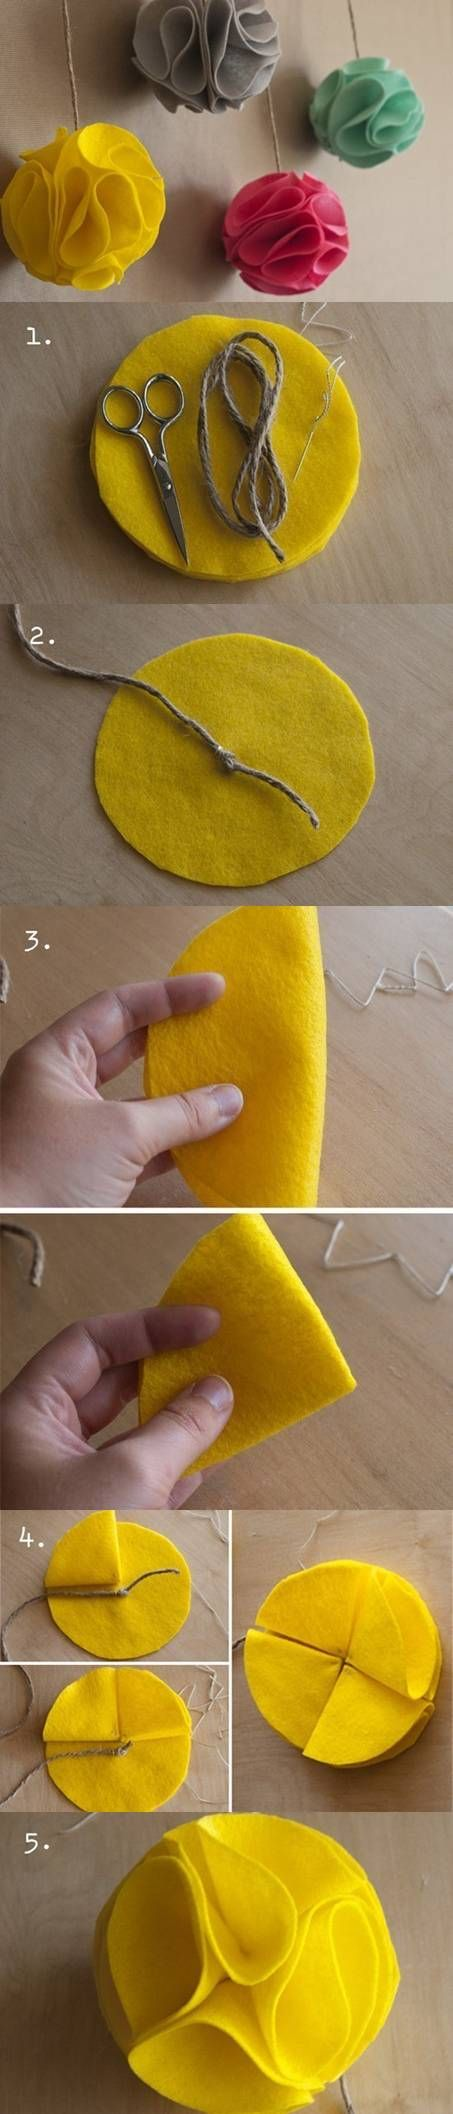 DIY: DIY Home and Crafts: DIY Felt Decorative Balls DIY Projects |... - Socialbliss